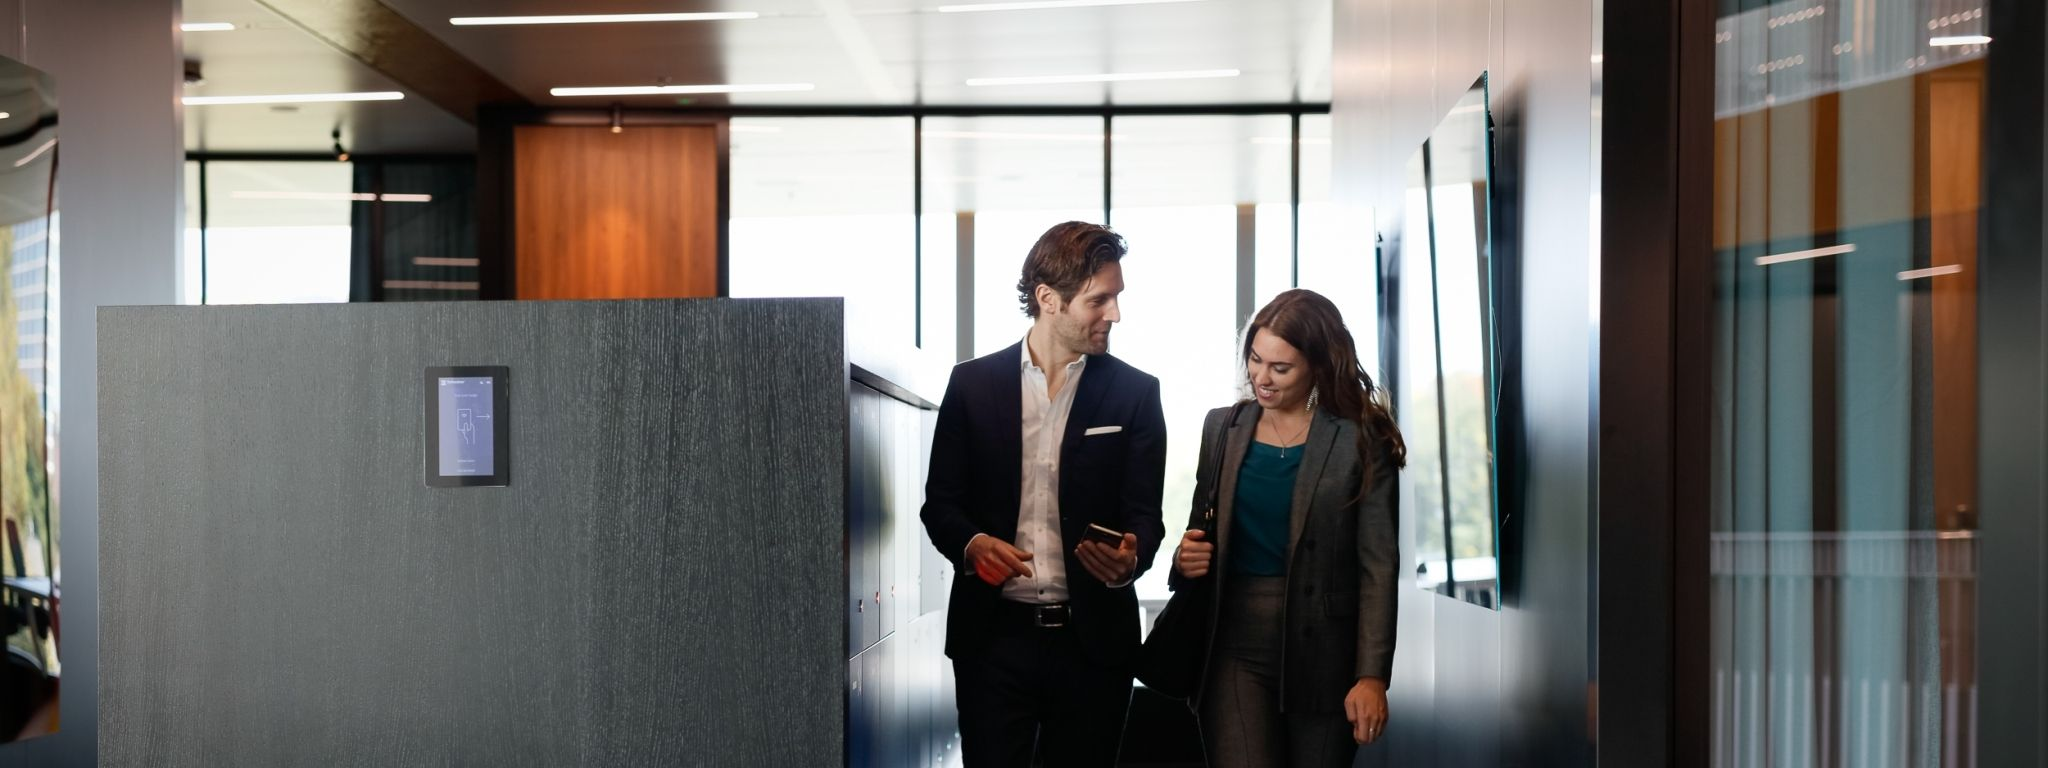 What are the benefits of smart lockers for dynamic workplaces?